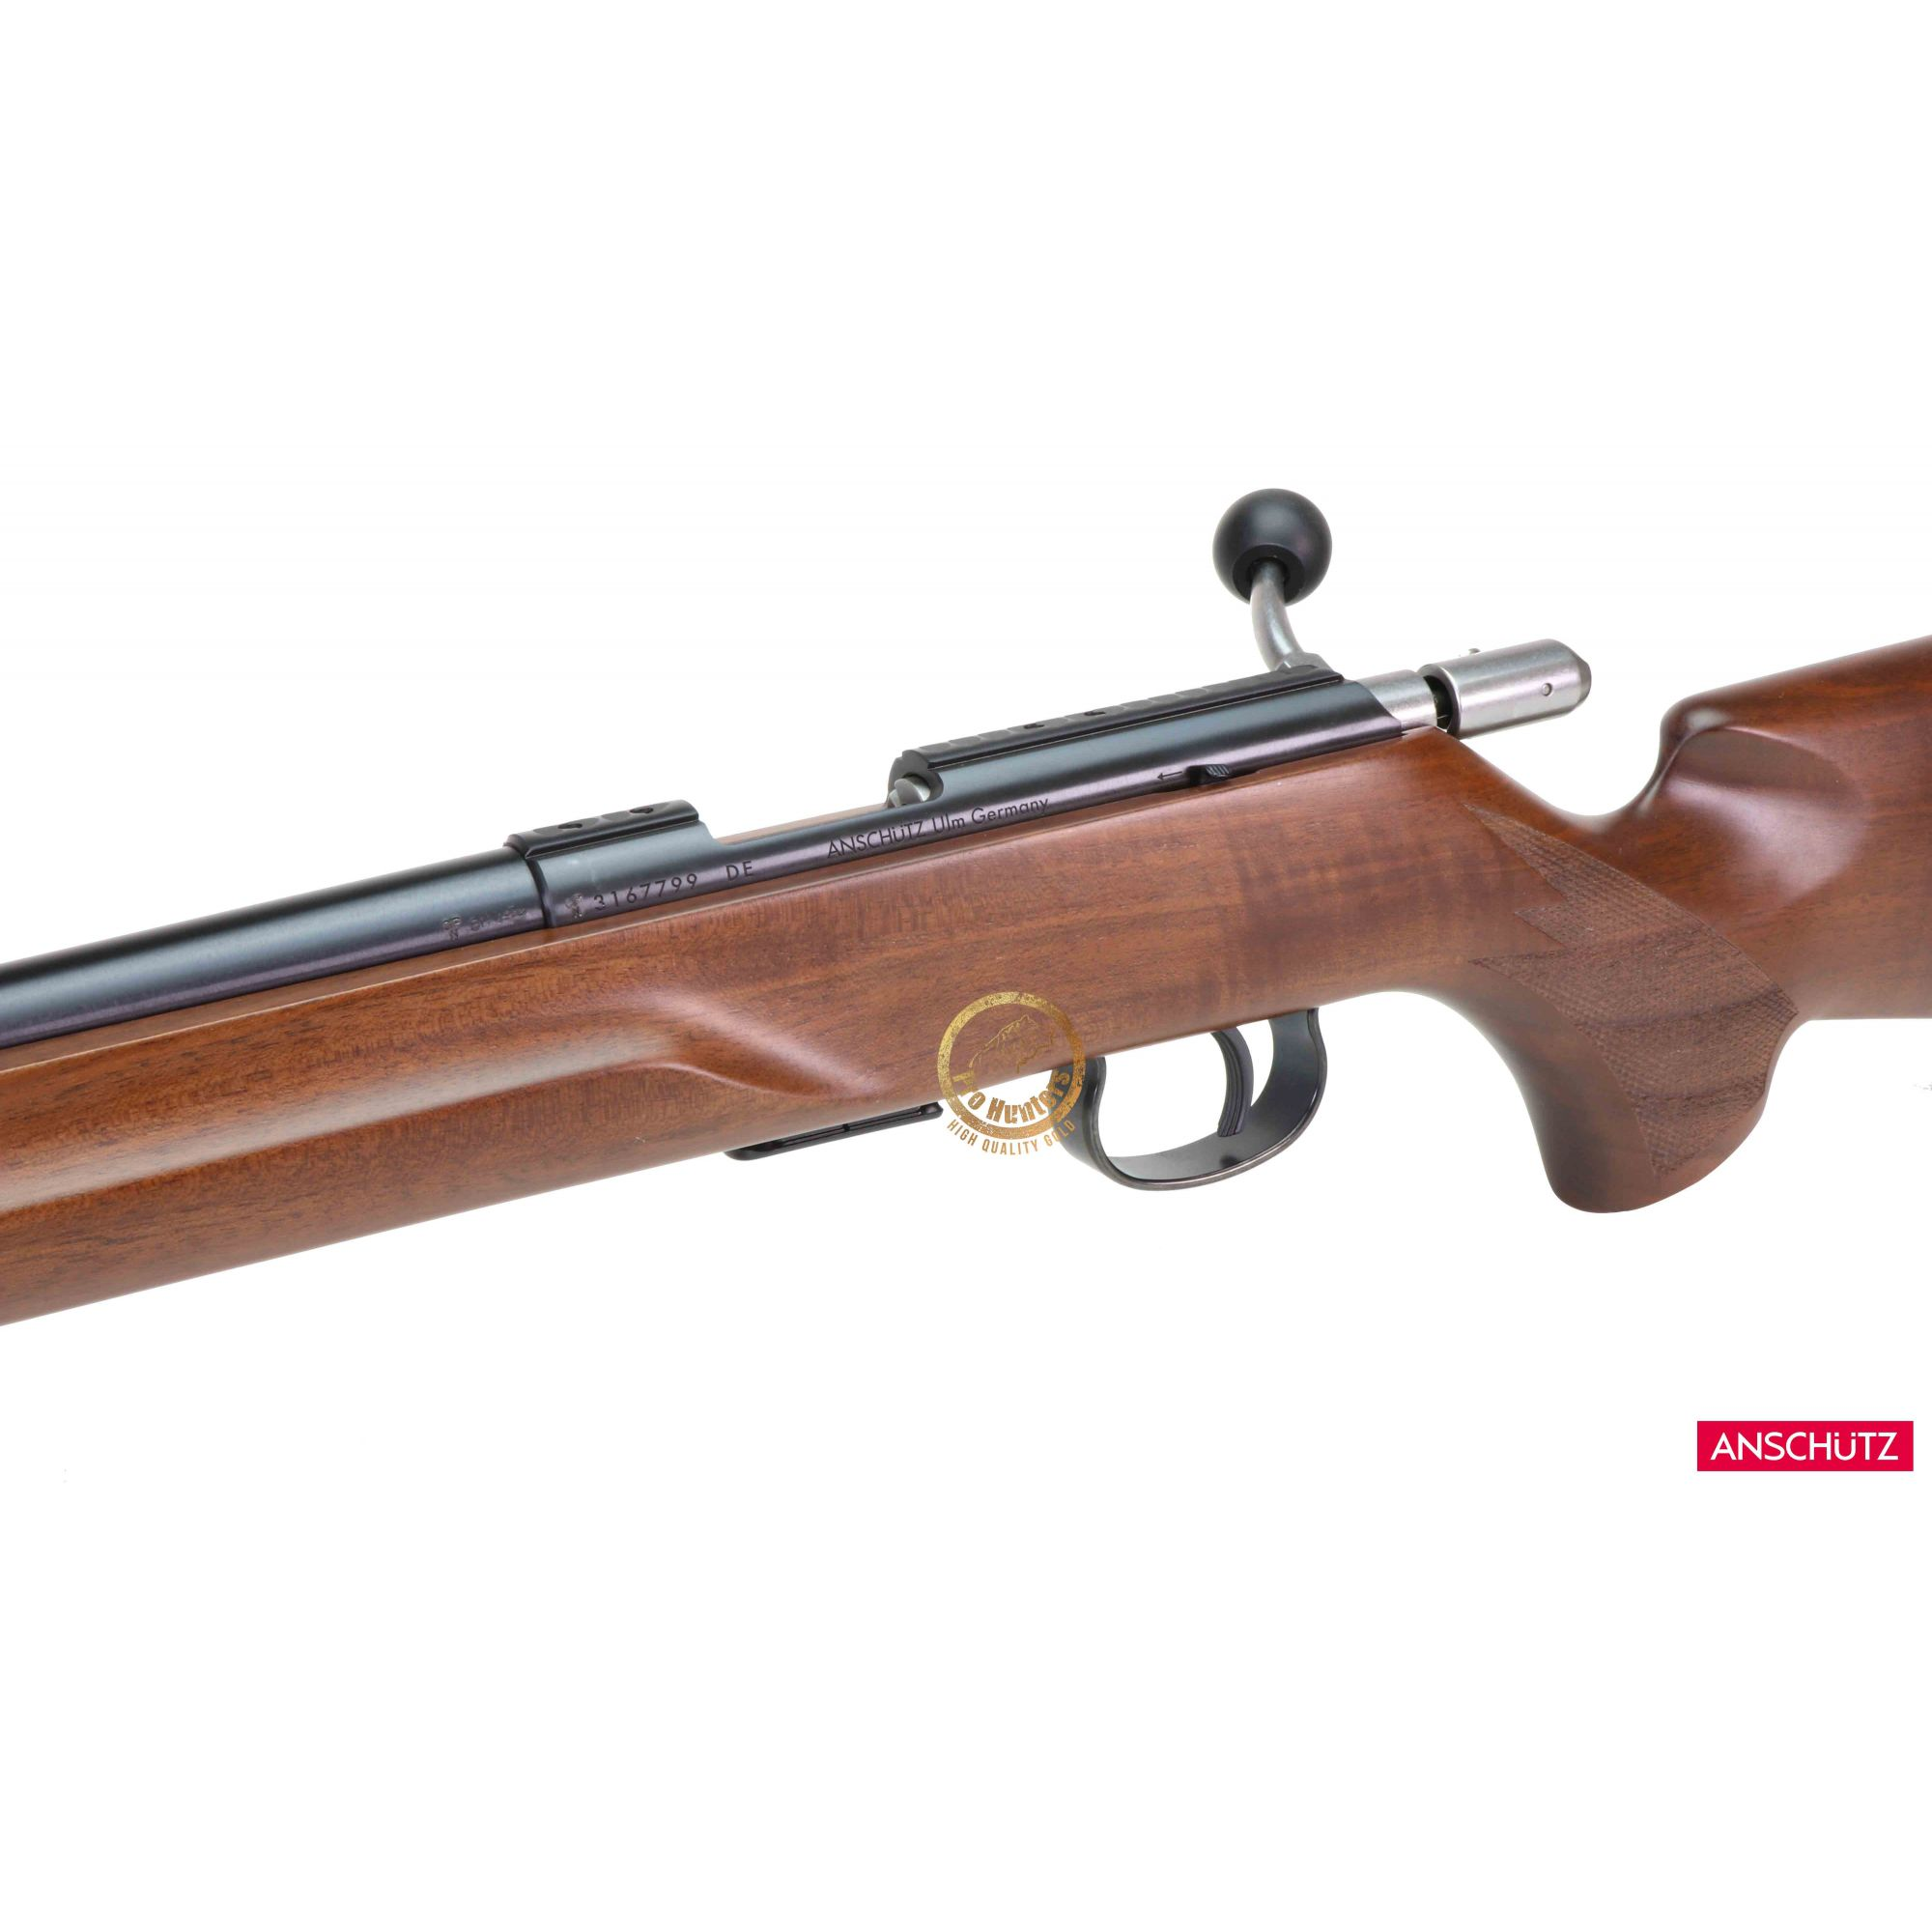 Anschutz - 1517 D HB Beavertail - Calibre .17 HMR  - Venda Exclusiva Para CAC